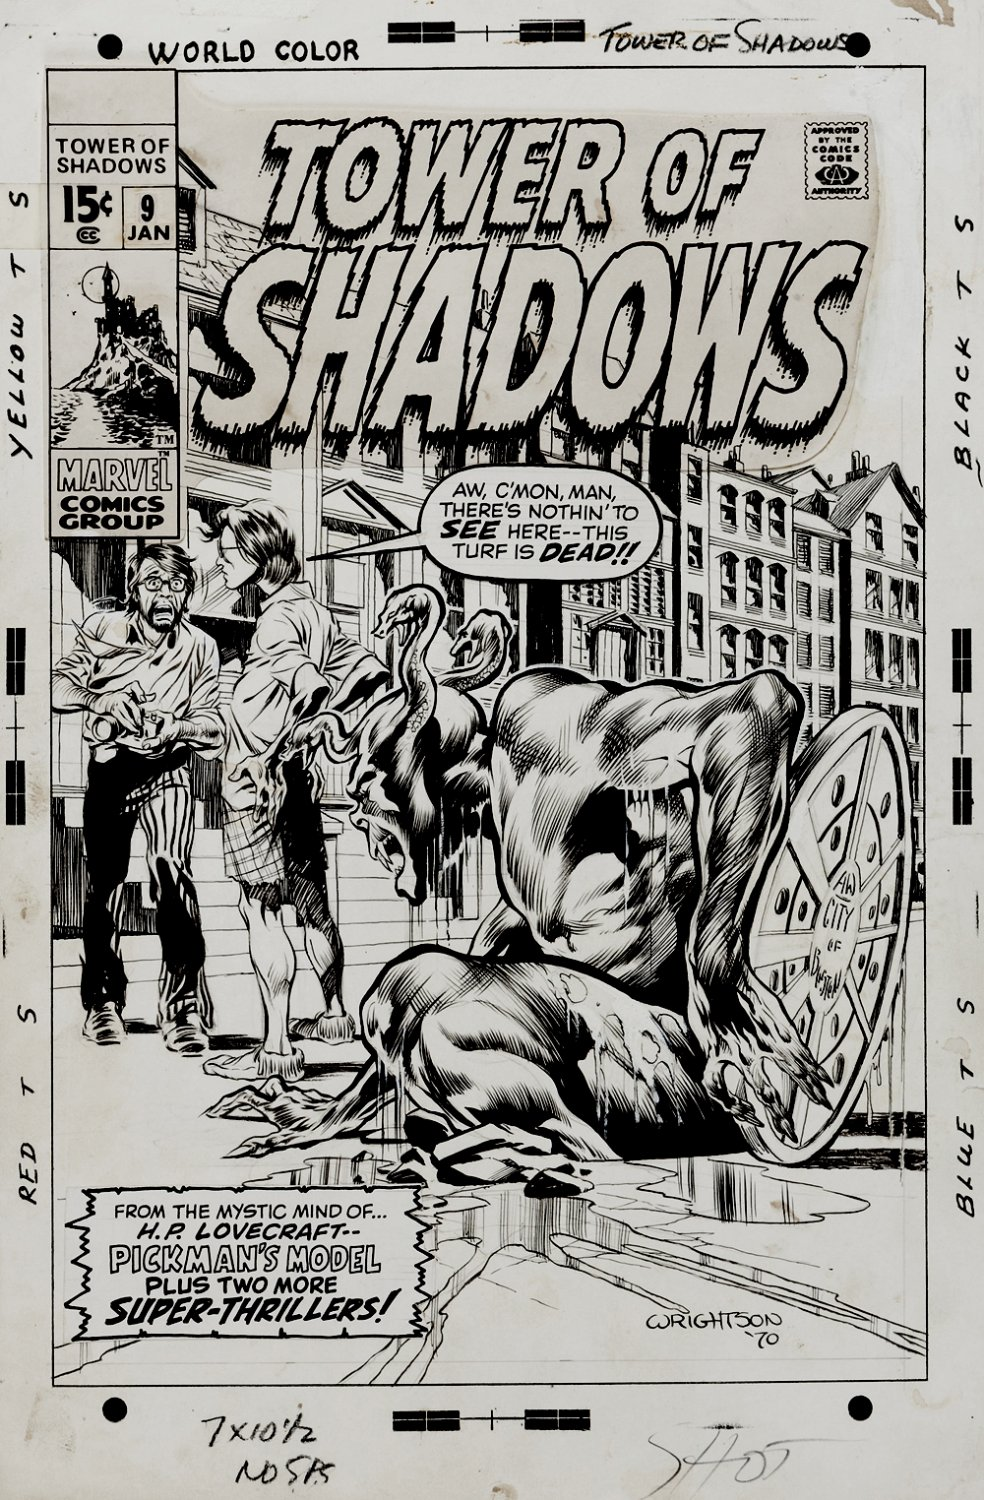 Tower of Shadows #9 Cover ( FIRST TIME WRIGHTSON DREW HIMSELF ON A HORROR COVER!) 1970